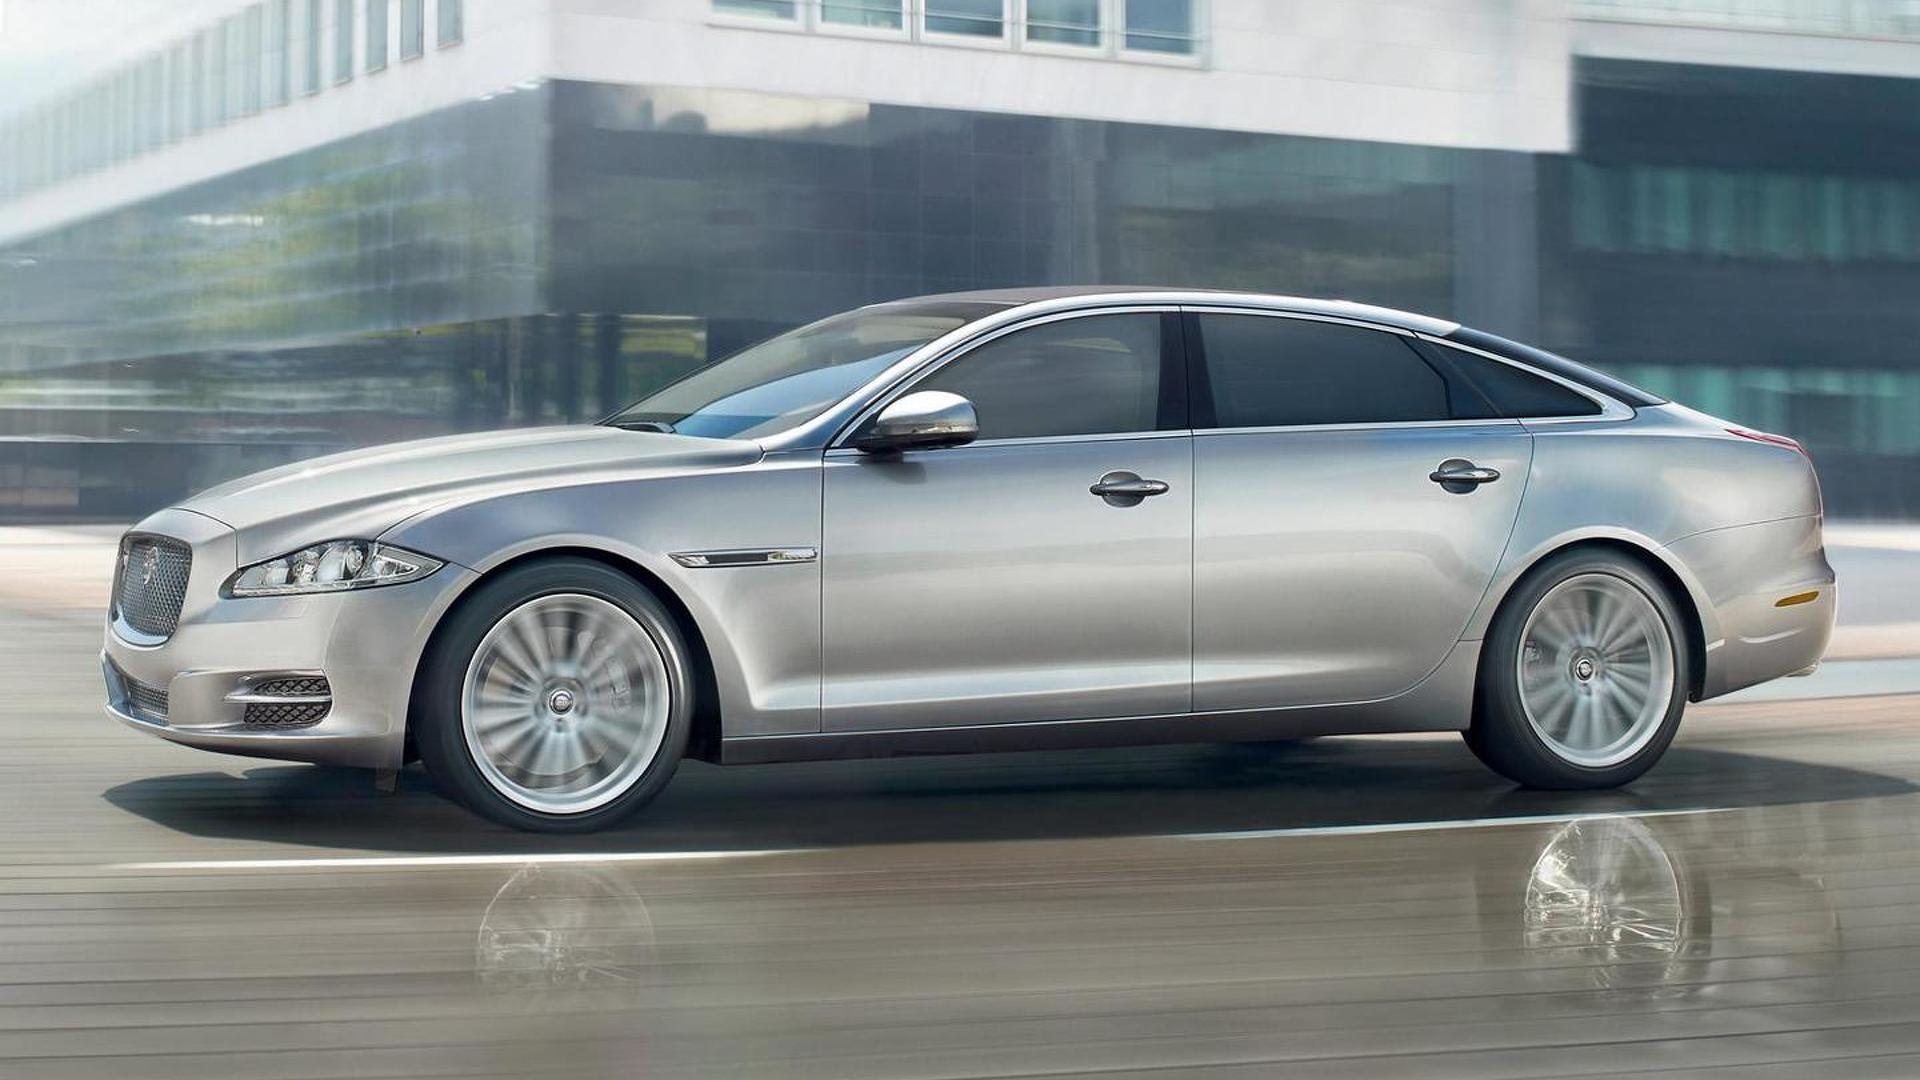 Jaguar Xj Sentinel Armored Vehicle Launched